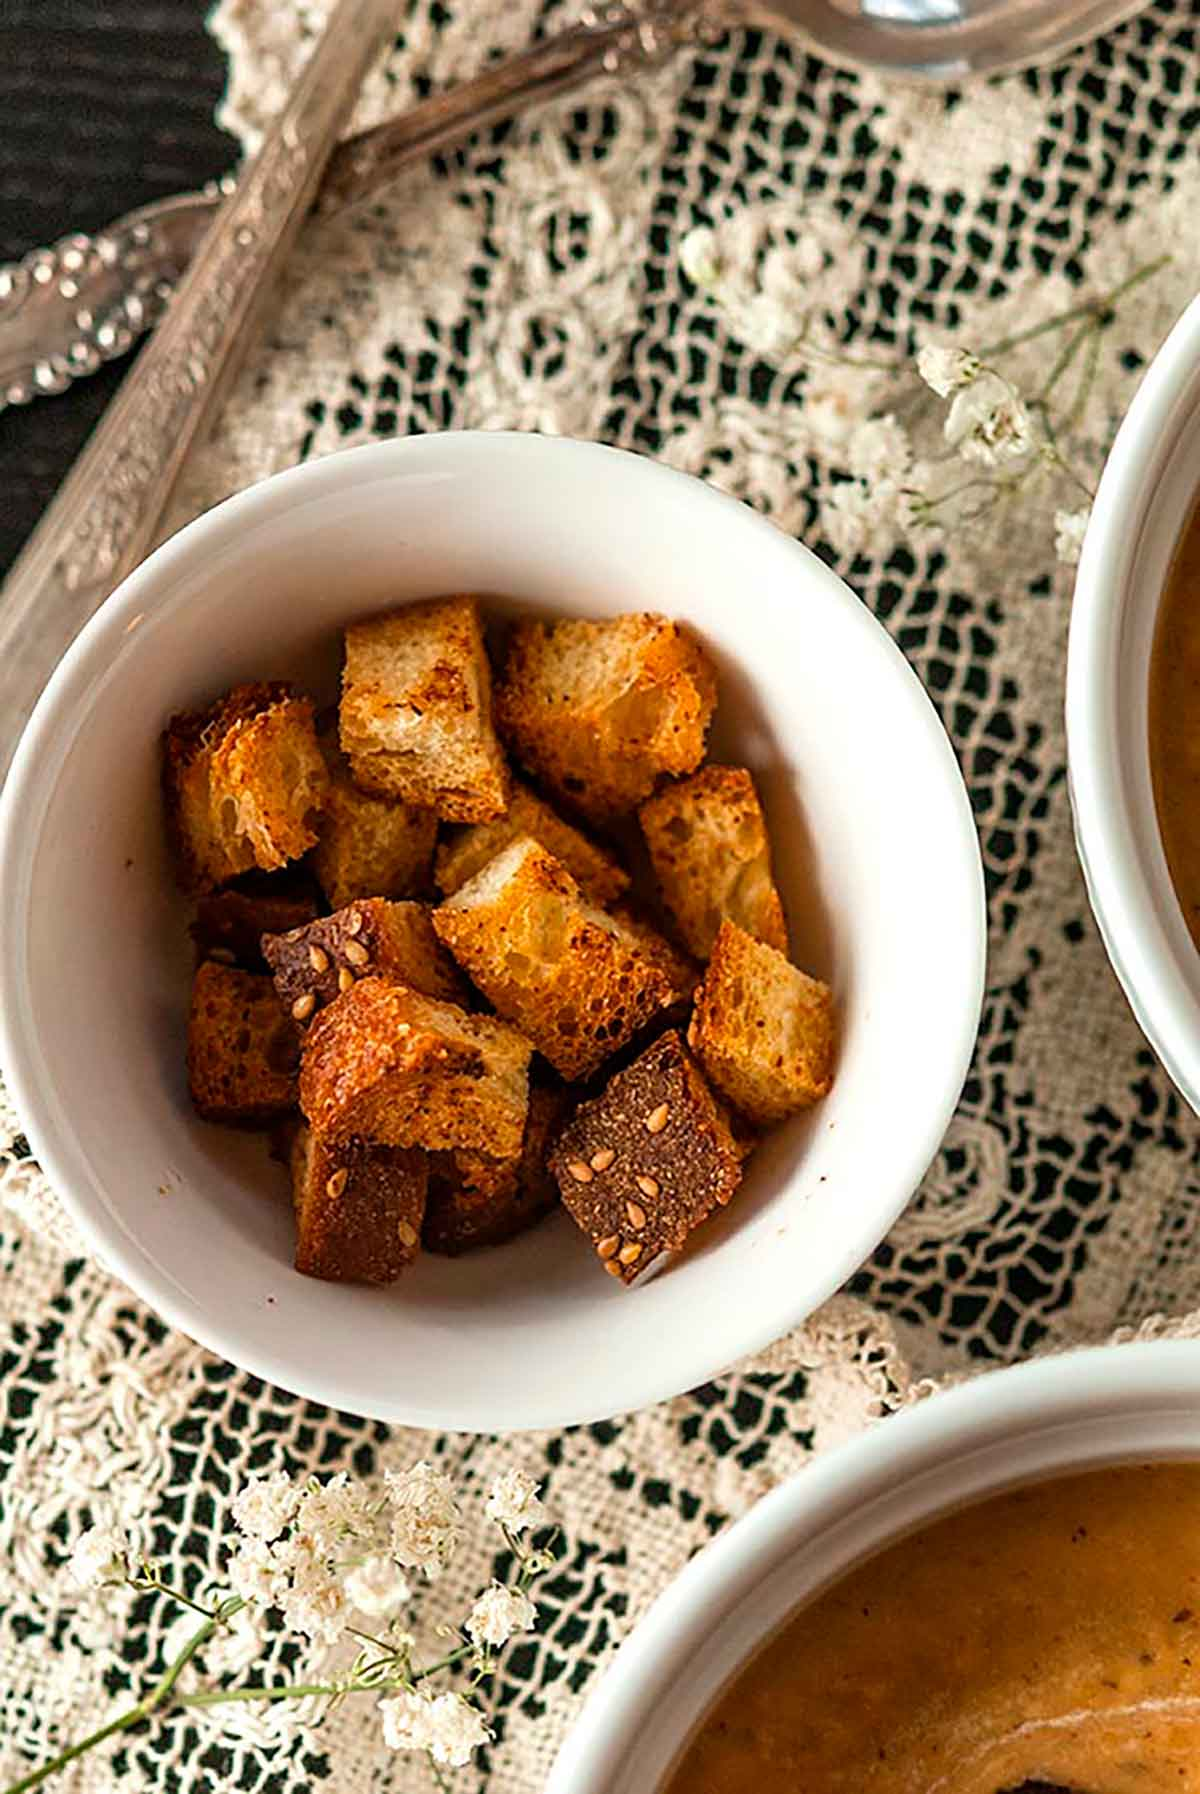 A small bowl of croutons on a lace table cloth.